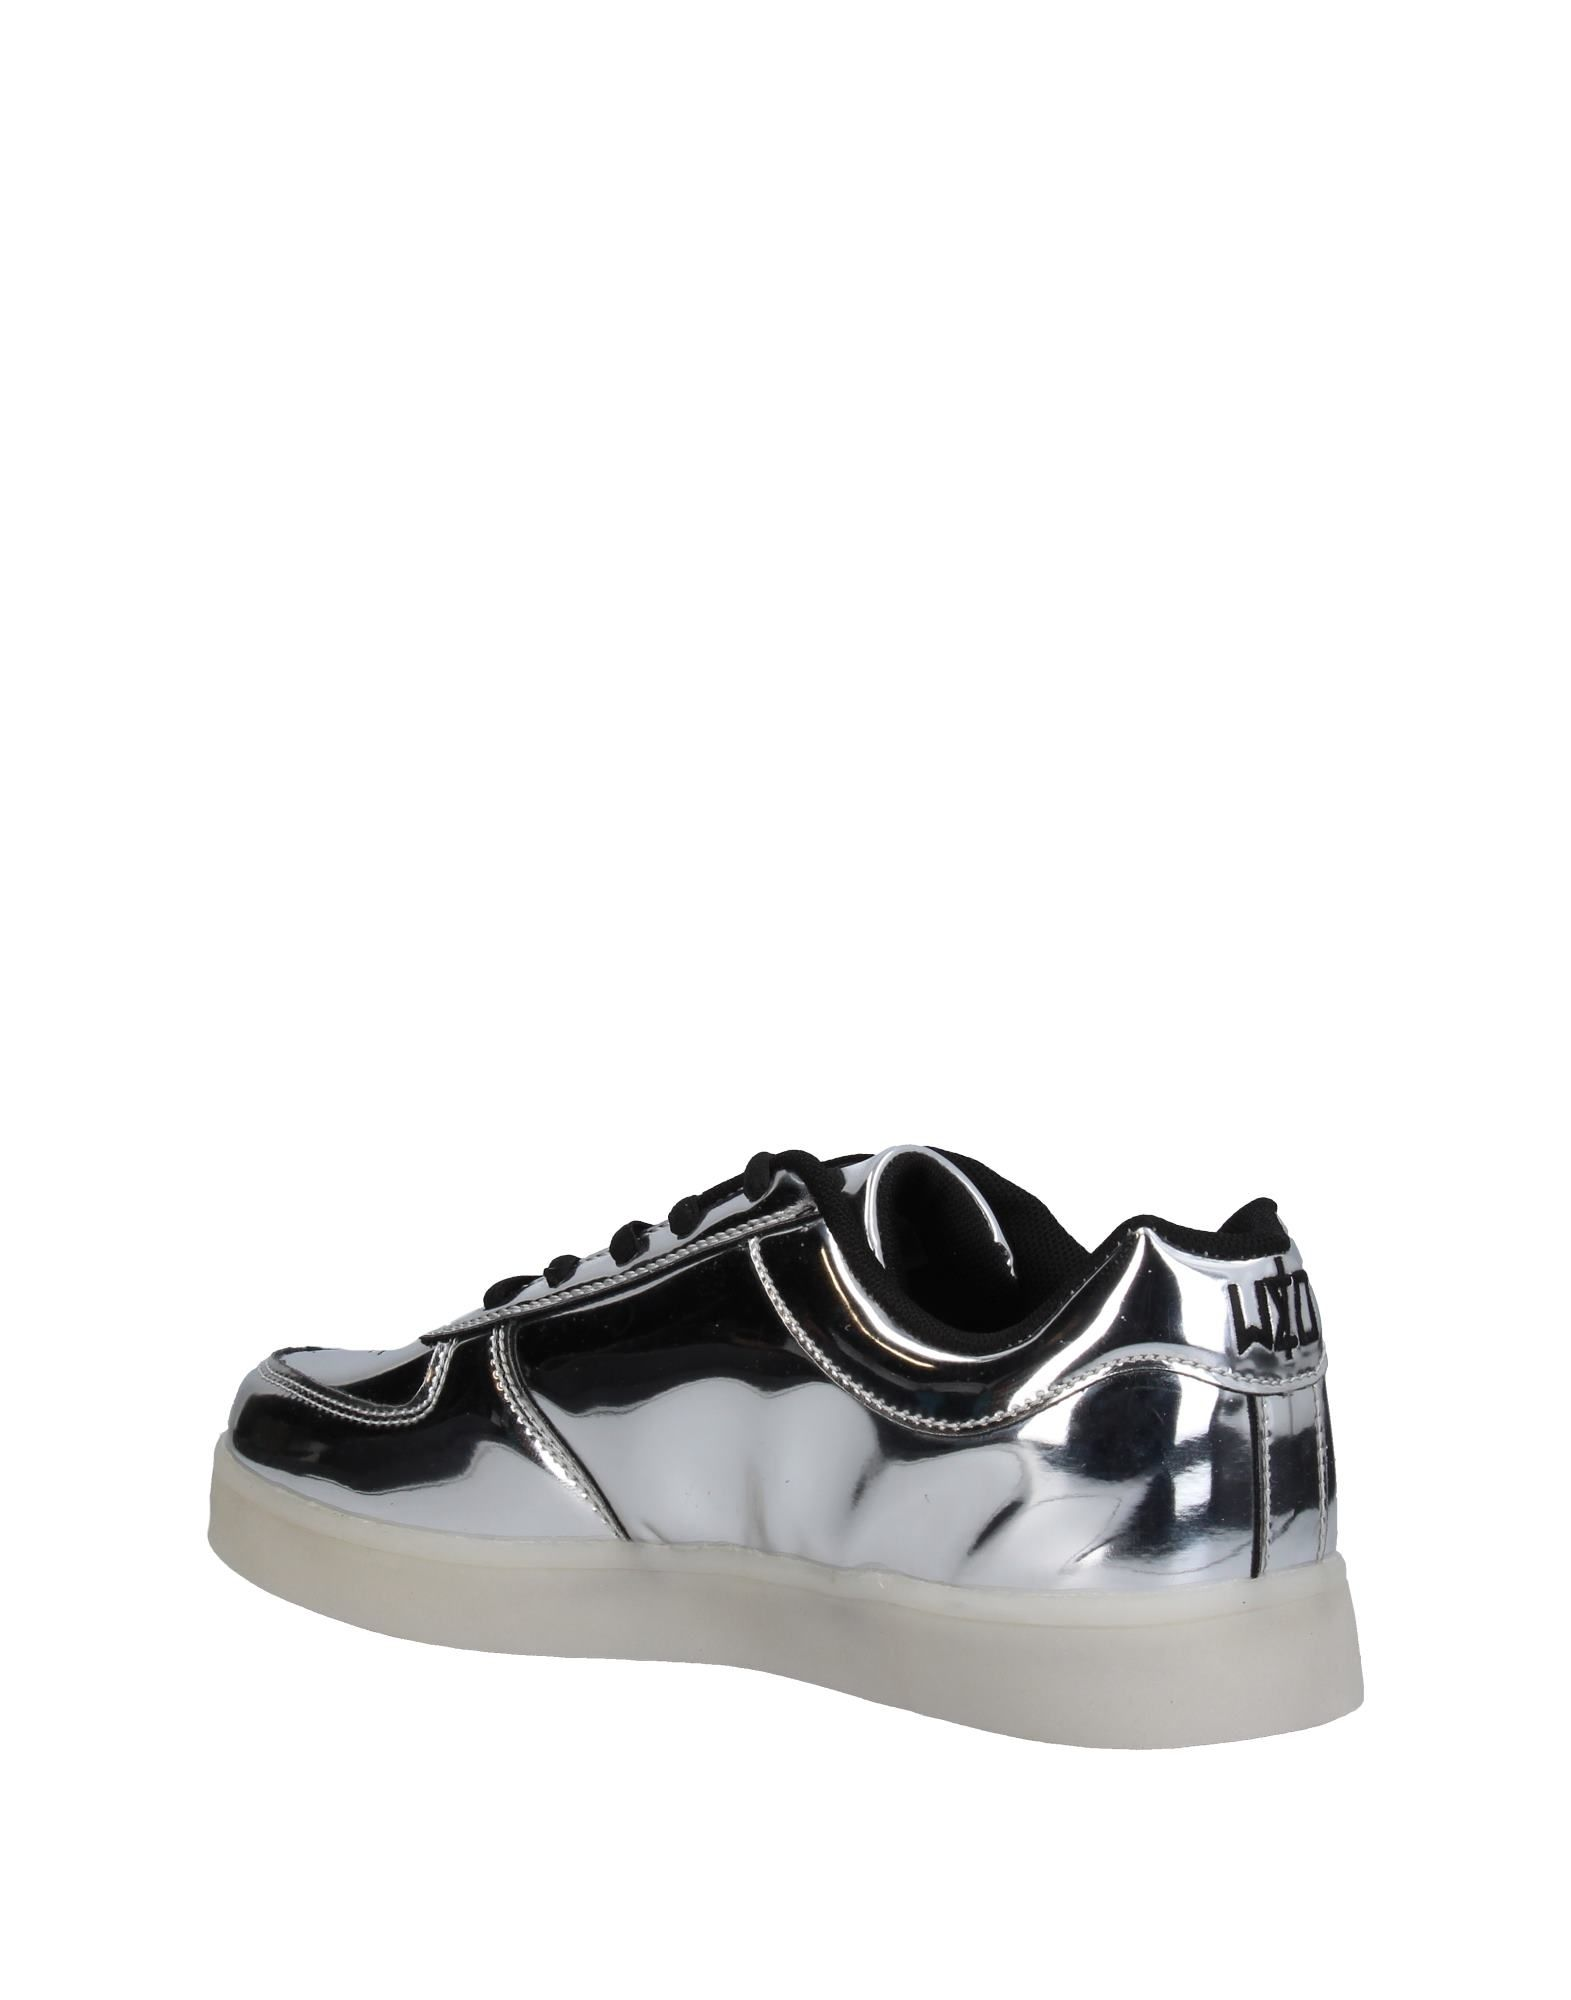 ... Chaussures À Lacets Wize & Ope Femme - Chaussures À Lacets Wize & Ope  sur ...